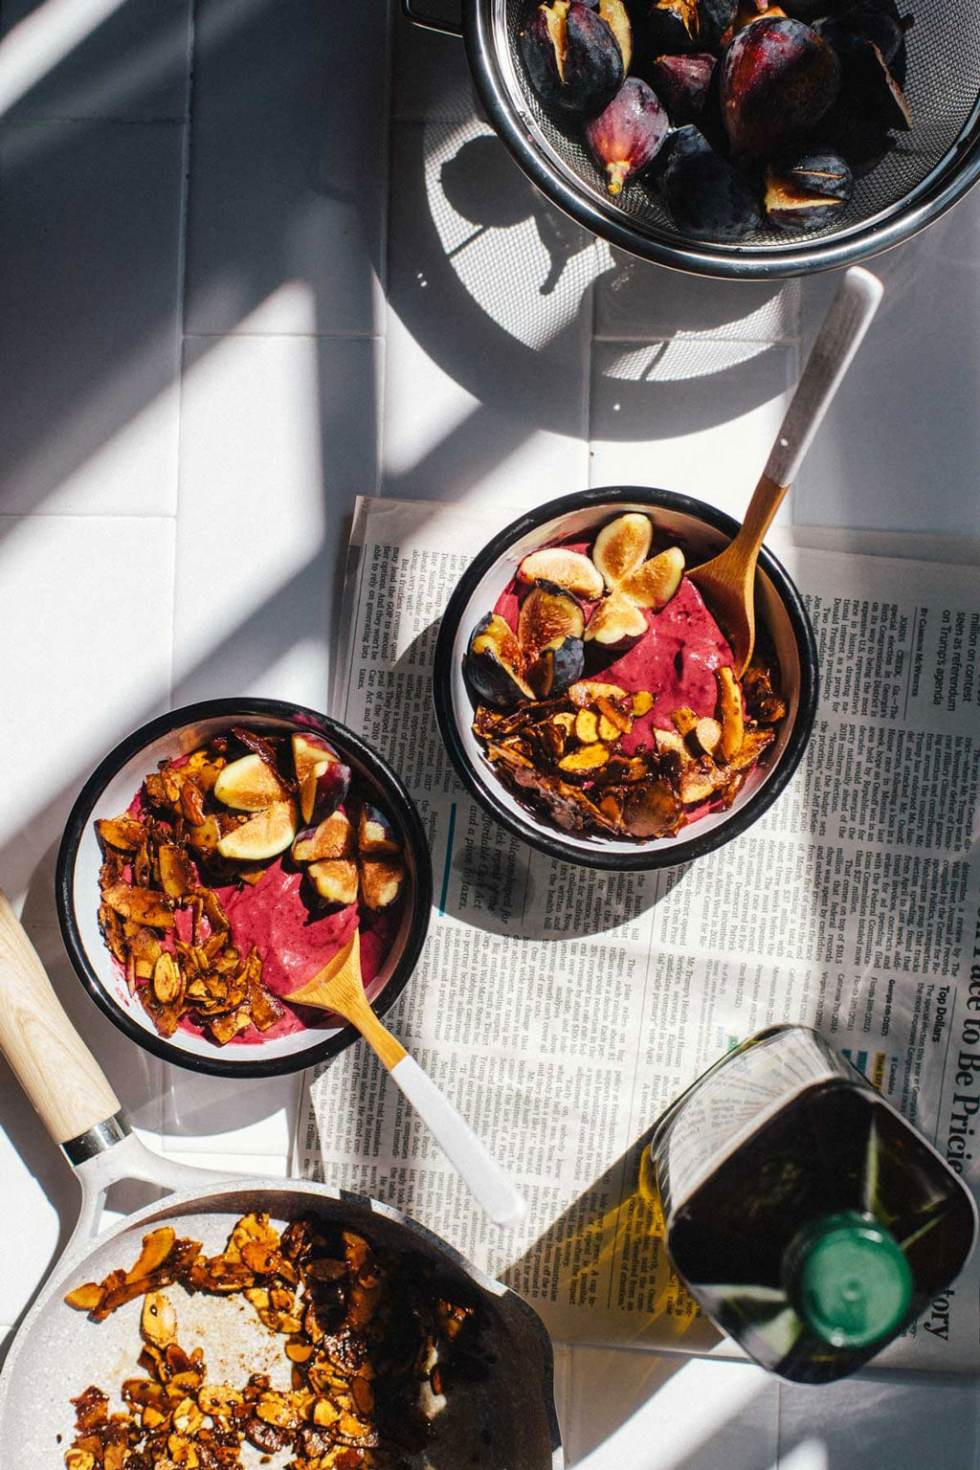 two bowls of blackberry acai frozen yogurt surrounded by a bowl of figs, a bottle of Pompeian olive oil and a skillet of olive oil granola crumble.